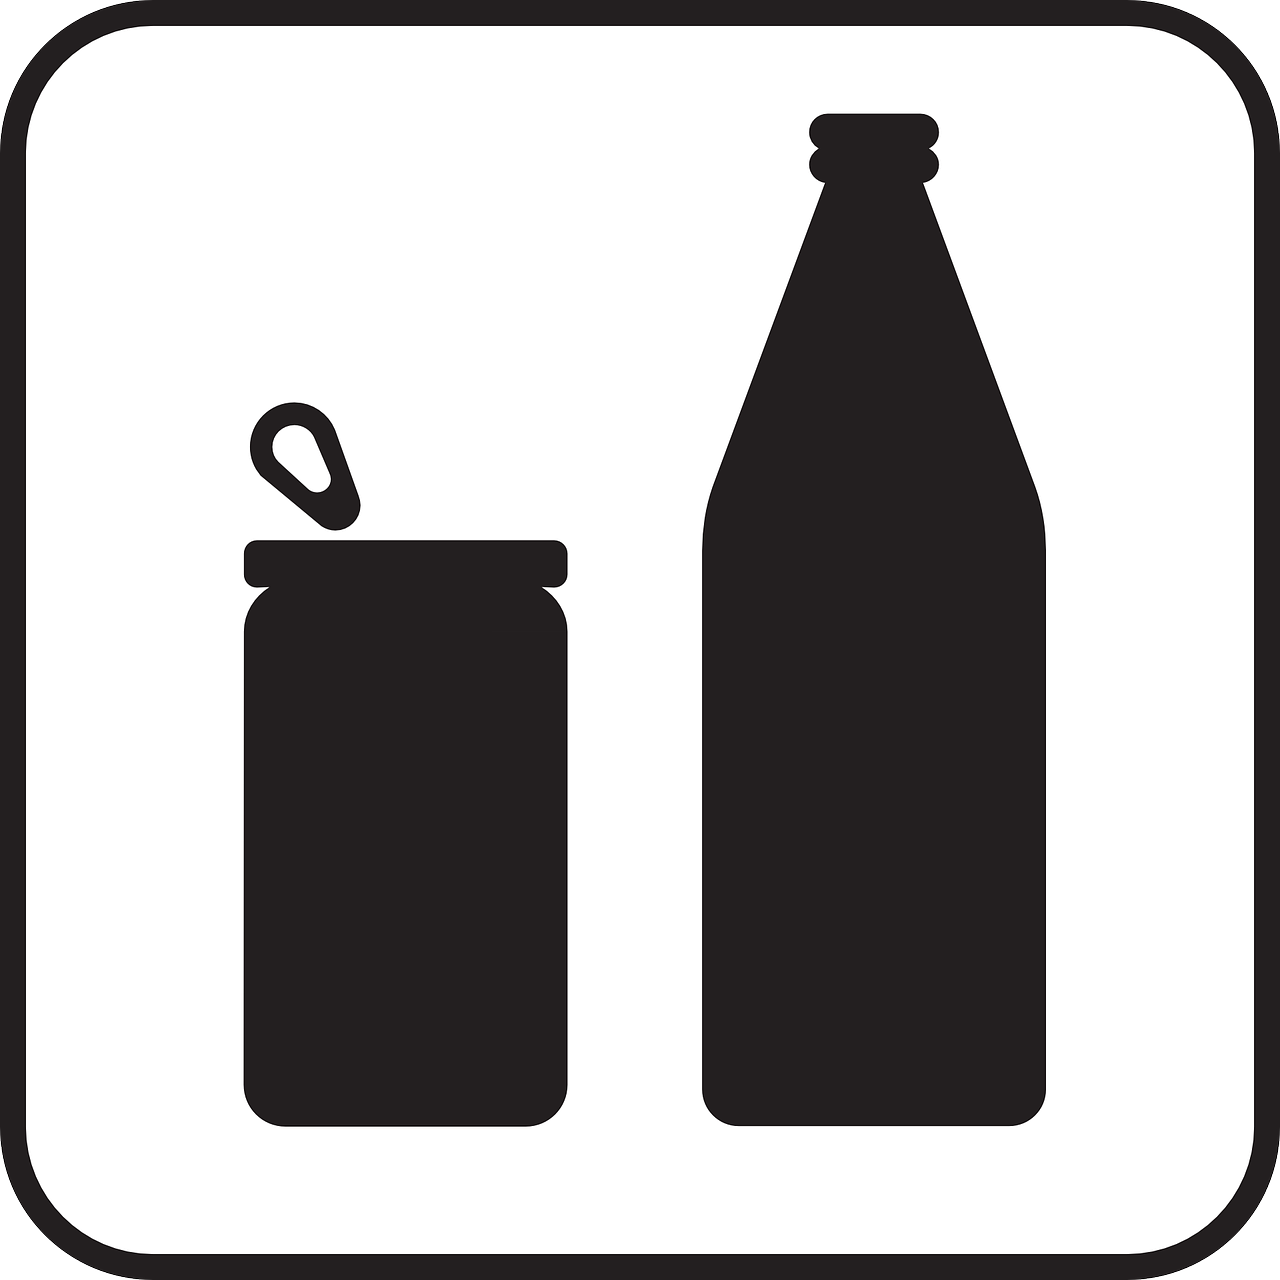 can,tin,bottle,drinking,beverages,waste,recycling,sign,symbol,icon,free vector graphics,free pictures, free photos, free images, royalty free, free illustrations, public domain